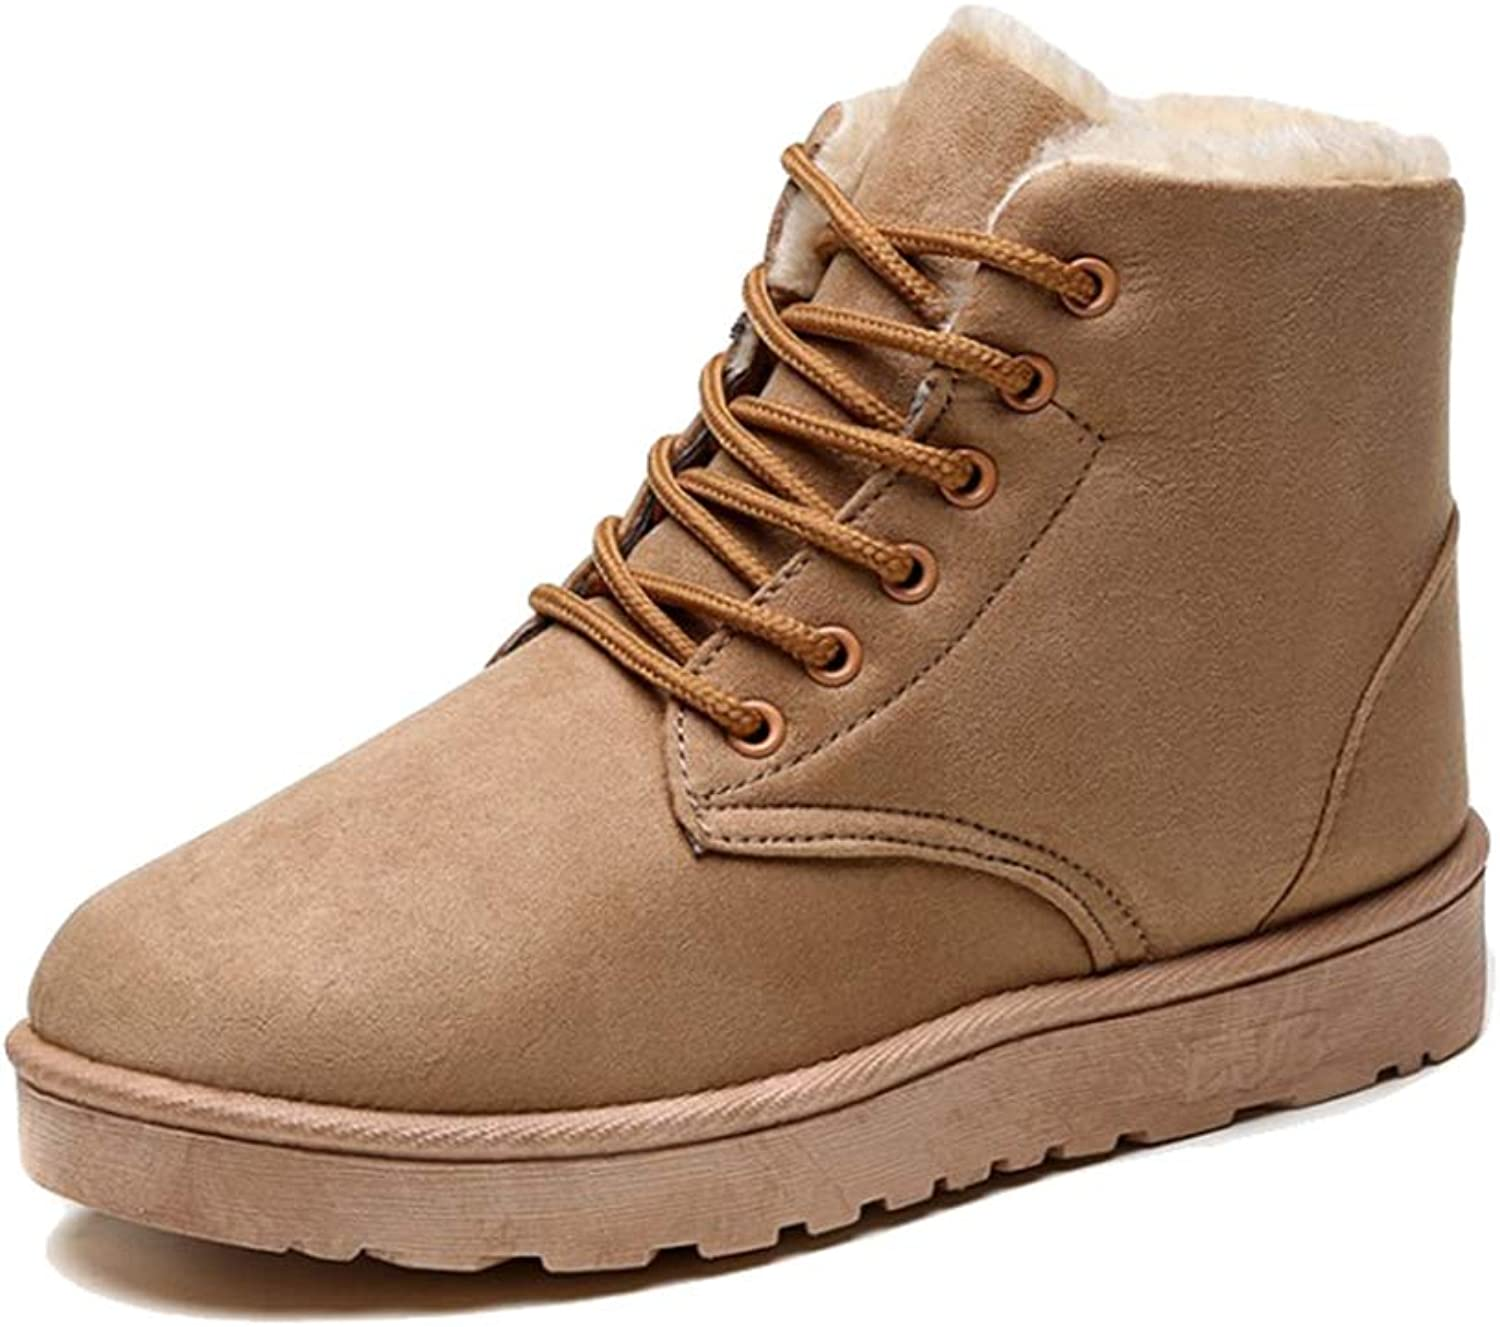 York Zhu Women's Boots,Faux Suede Outdoor Winter Casual shoes Female Snow Bootsv